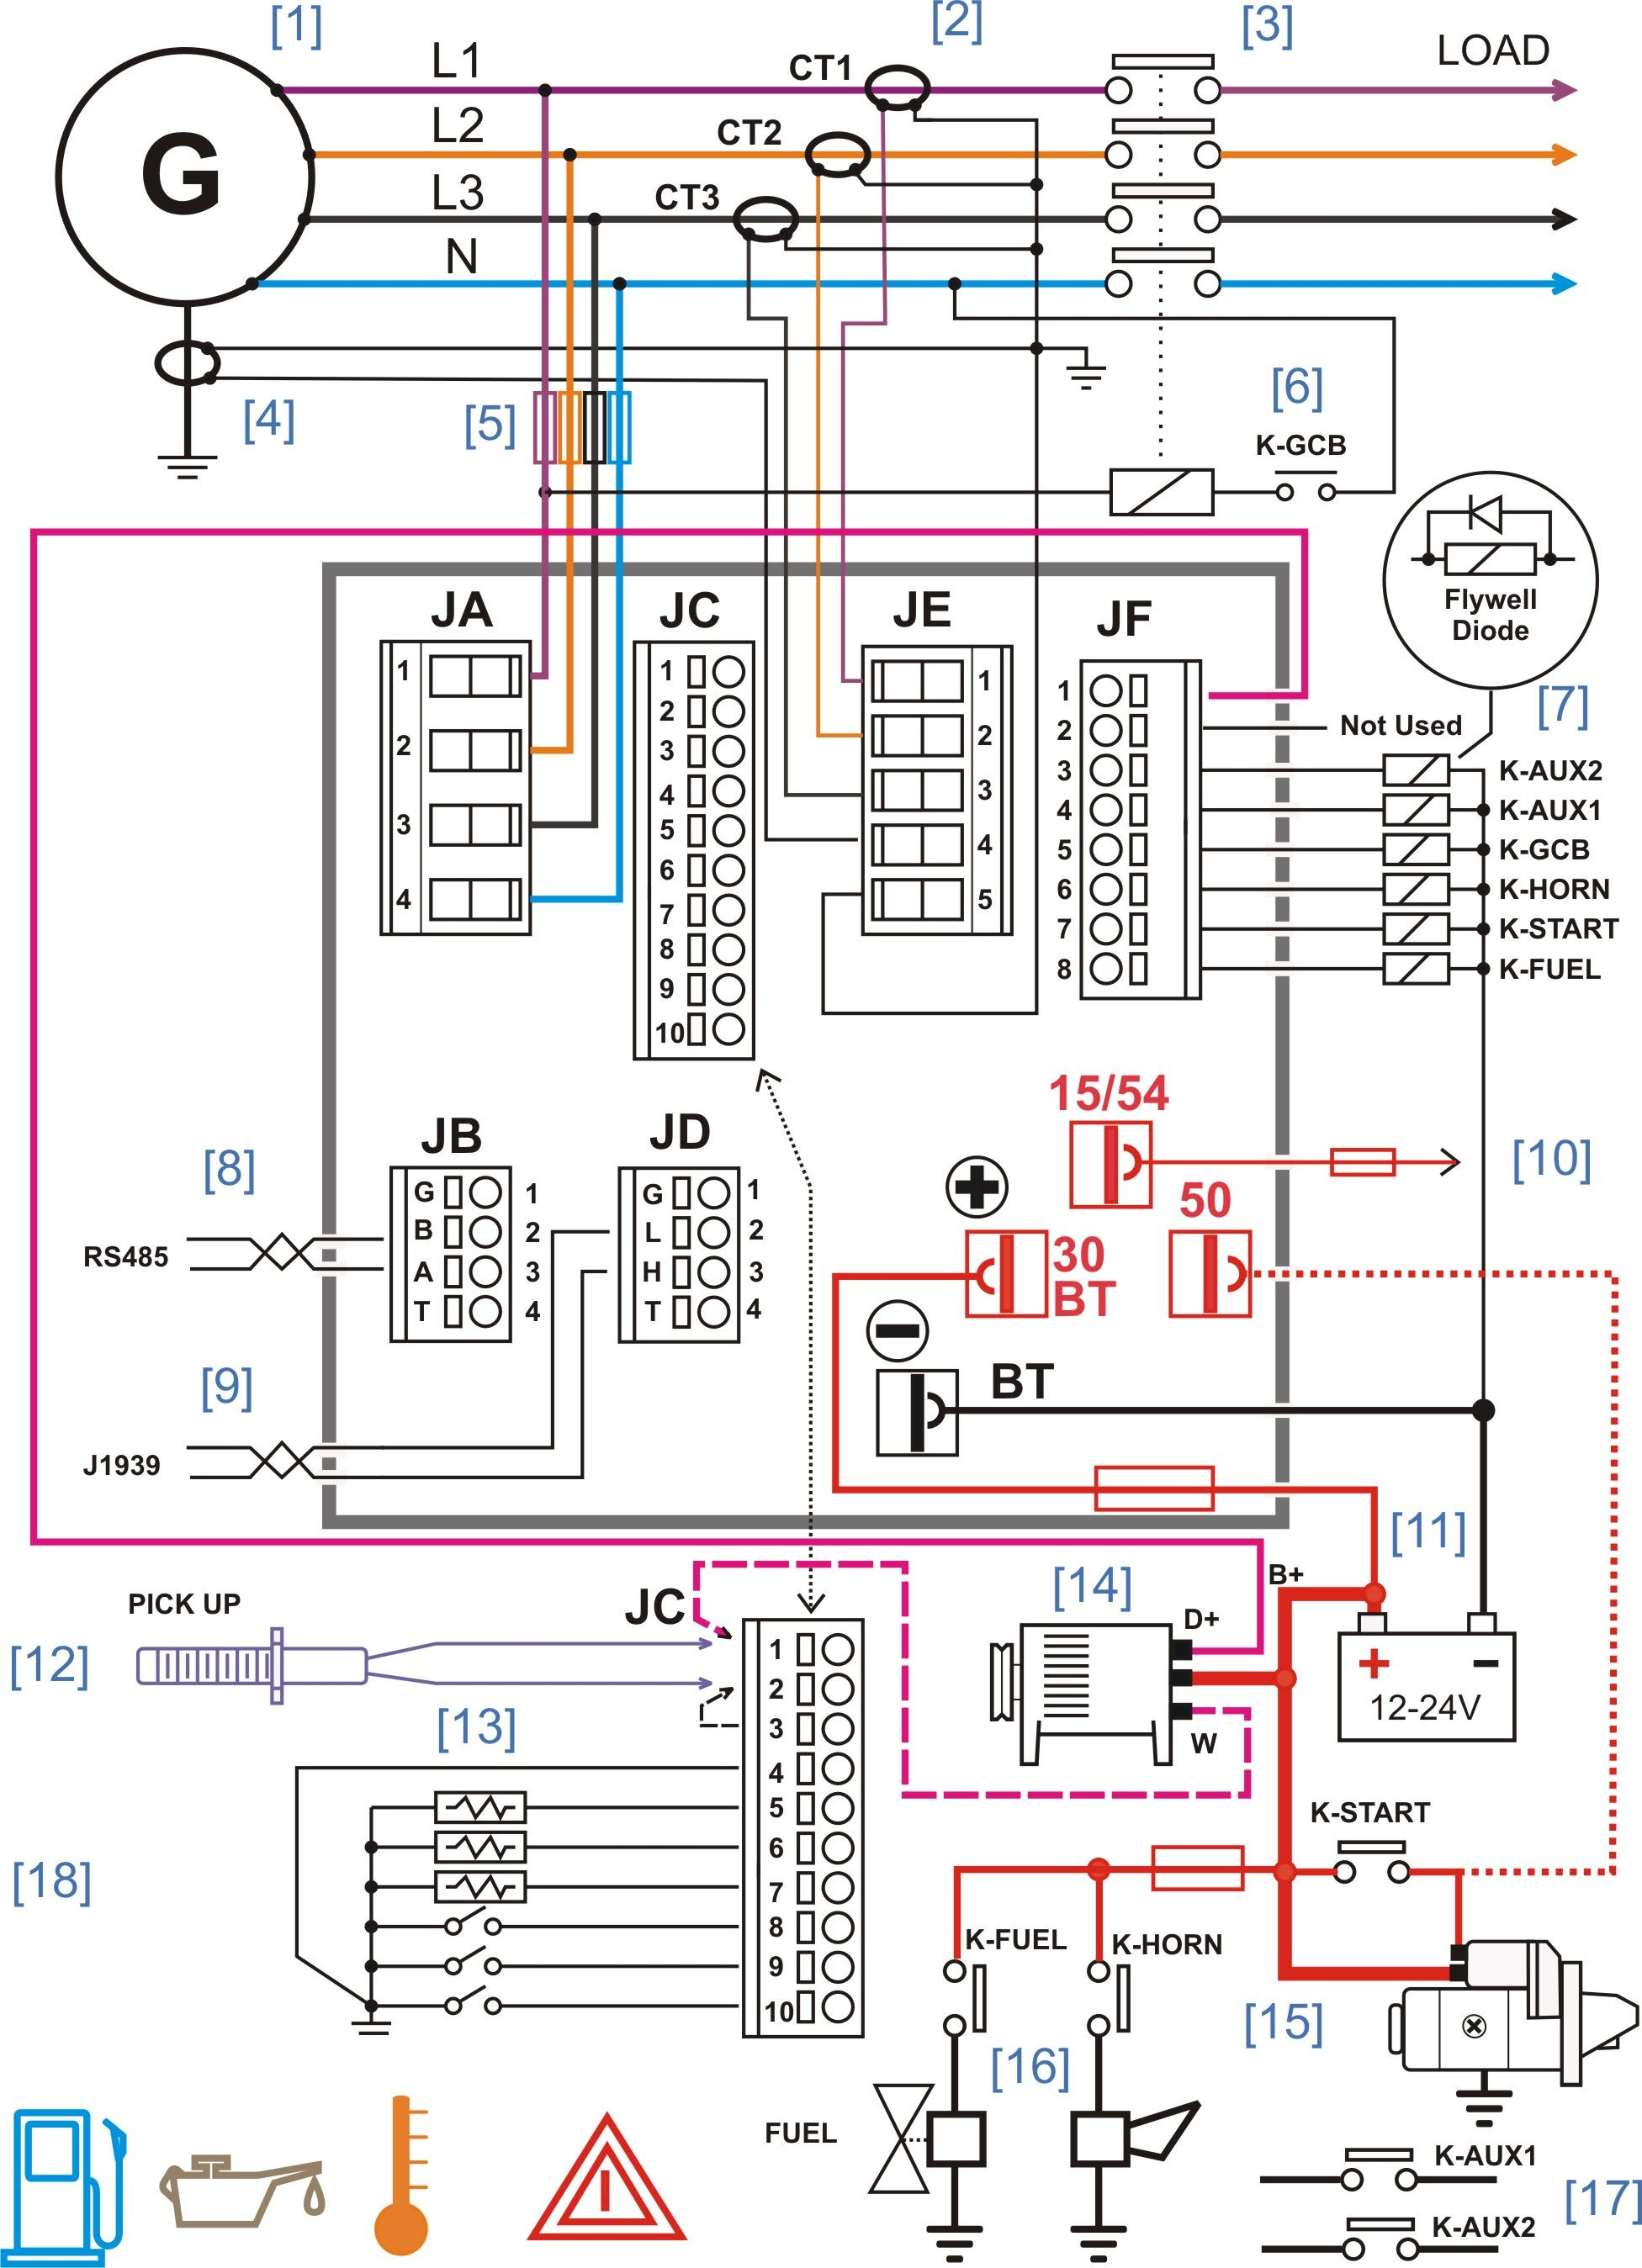 Industrial Panel Wiring Diagram : Diesel generator control panel wiring diagram